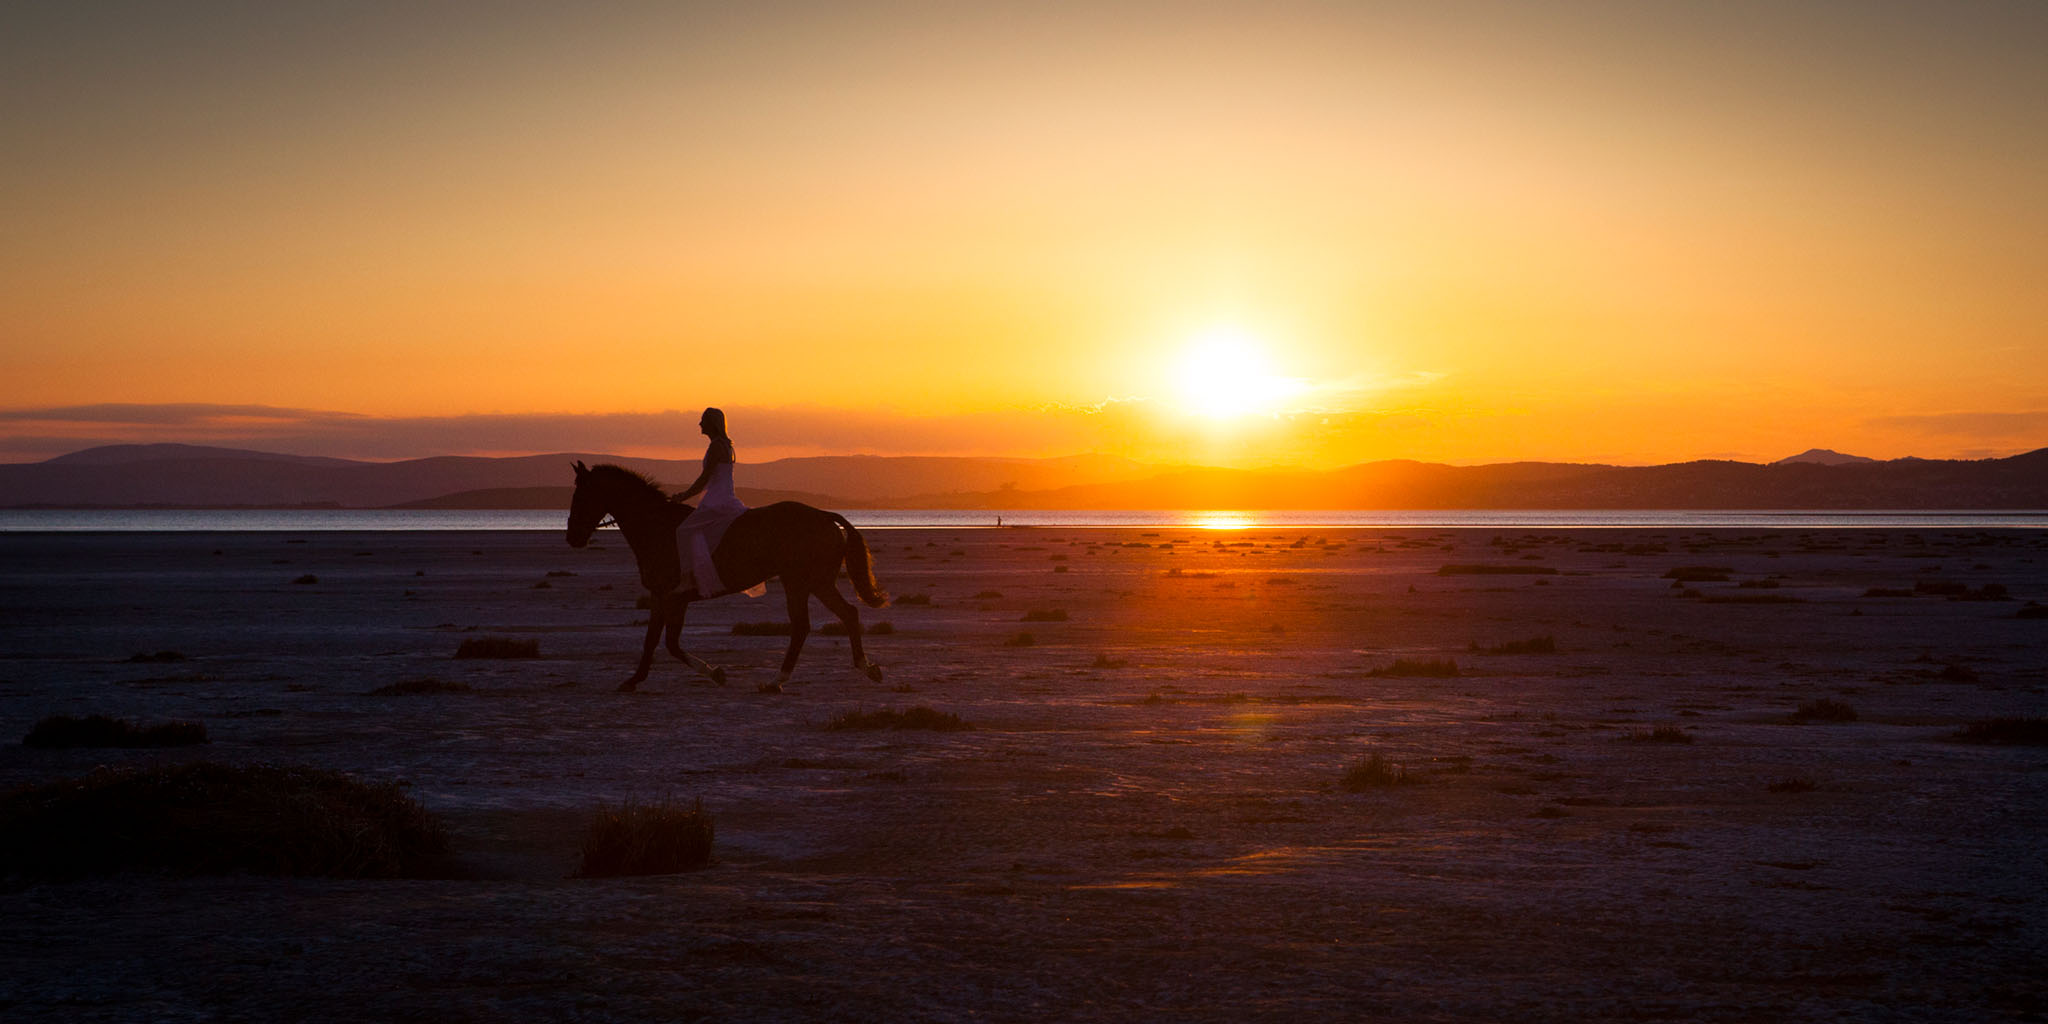 A portrait of a rider and her horse at sunset on the beach